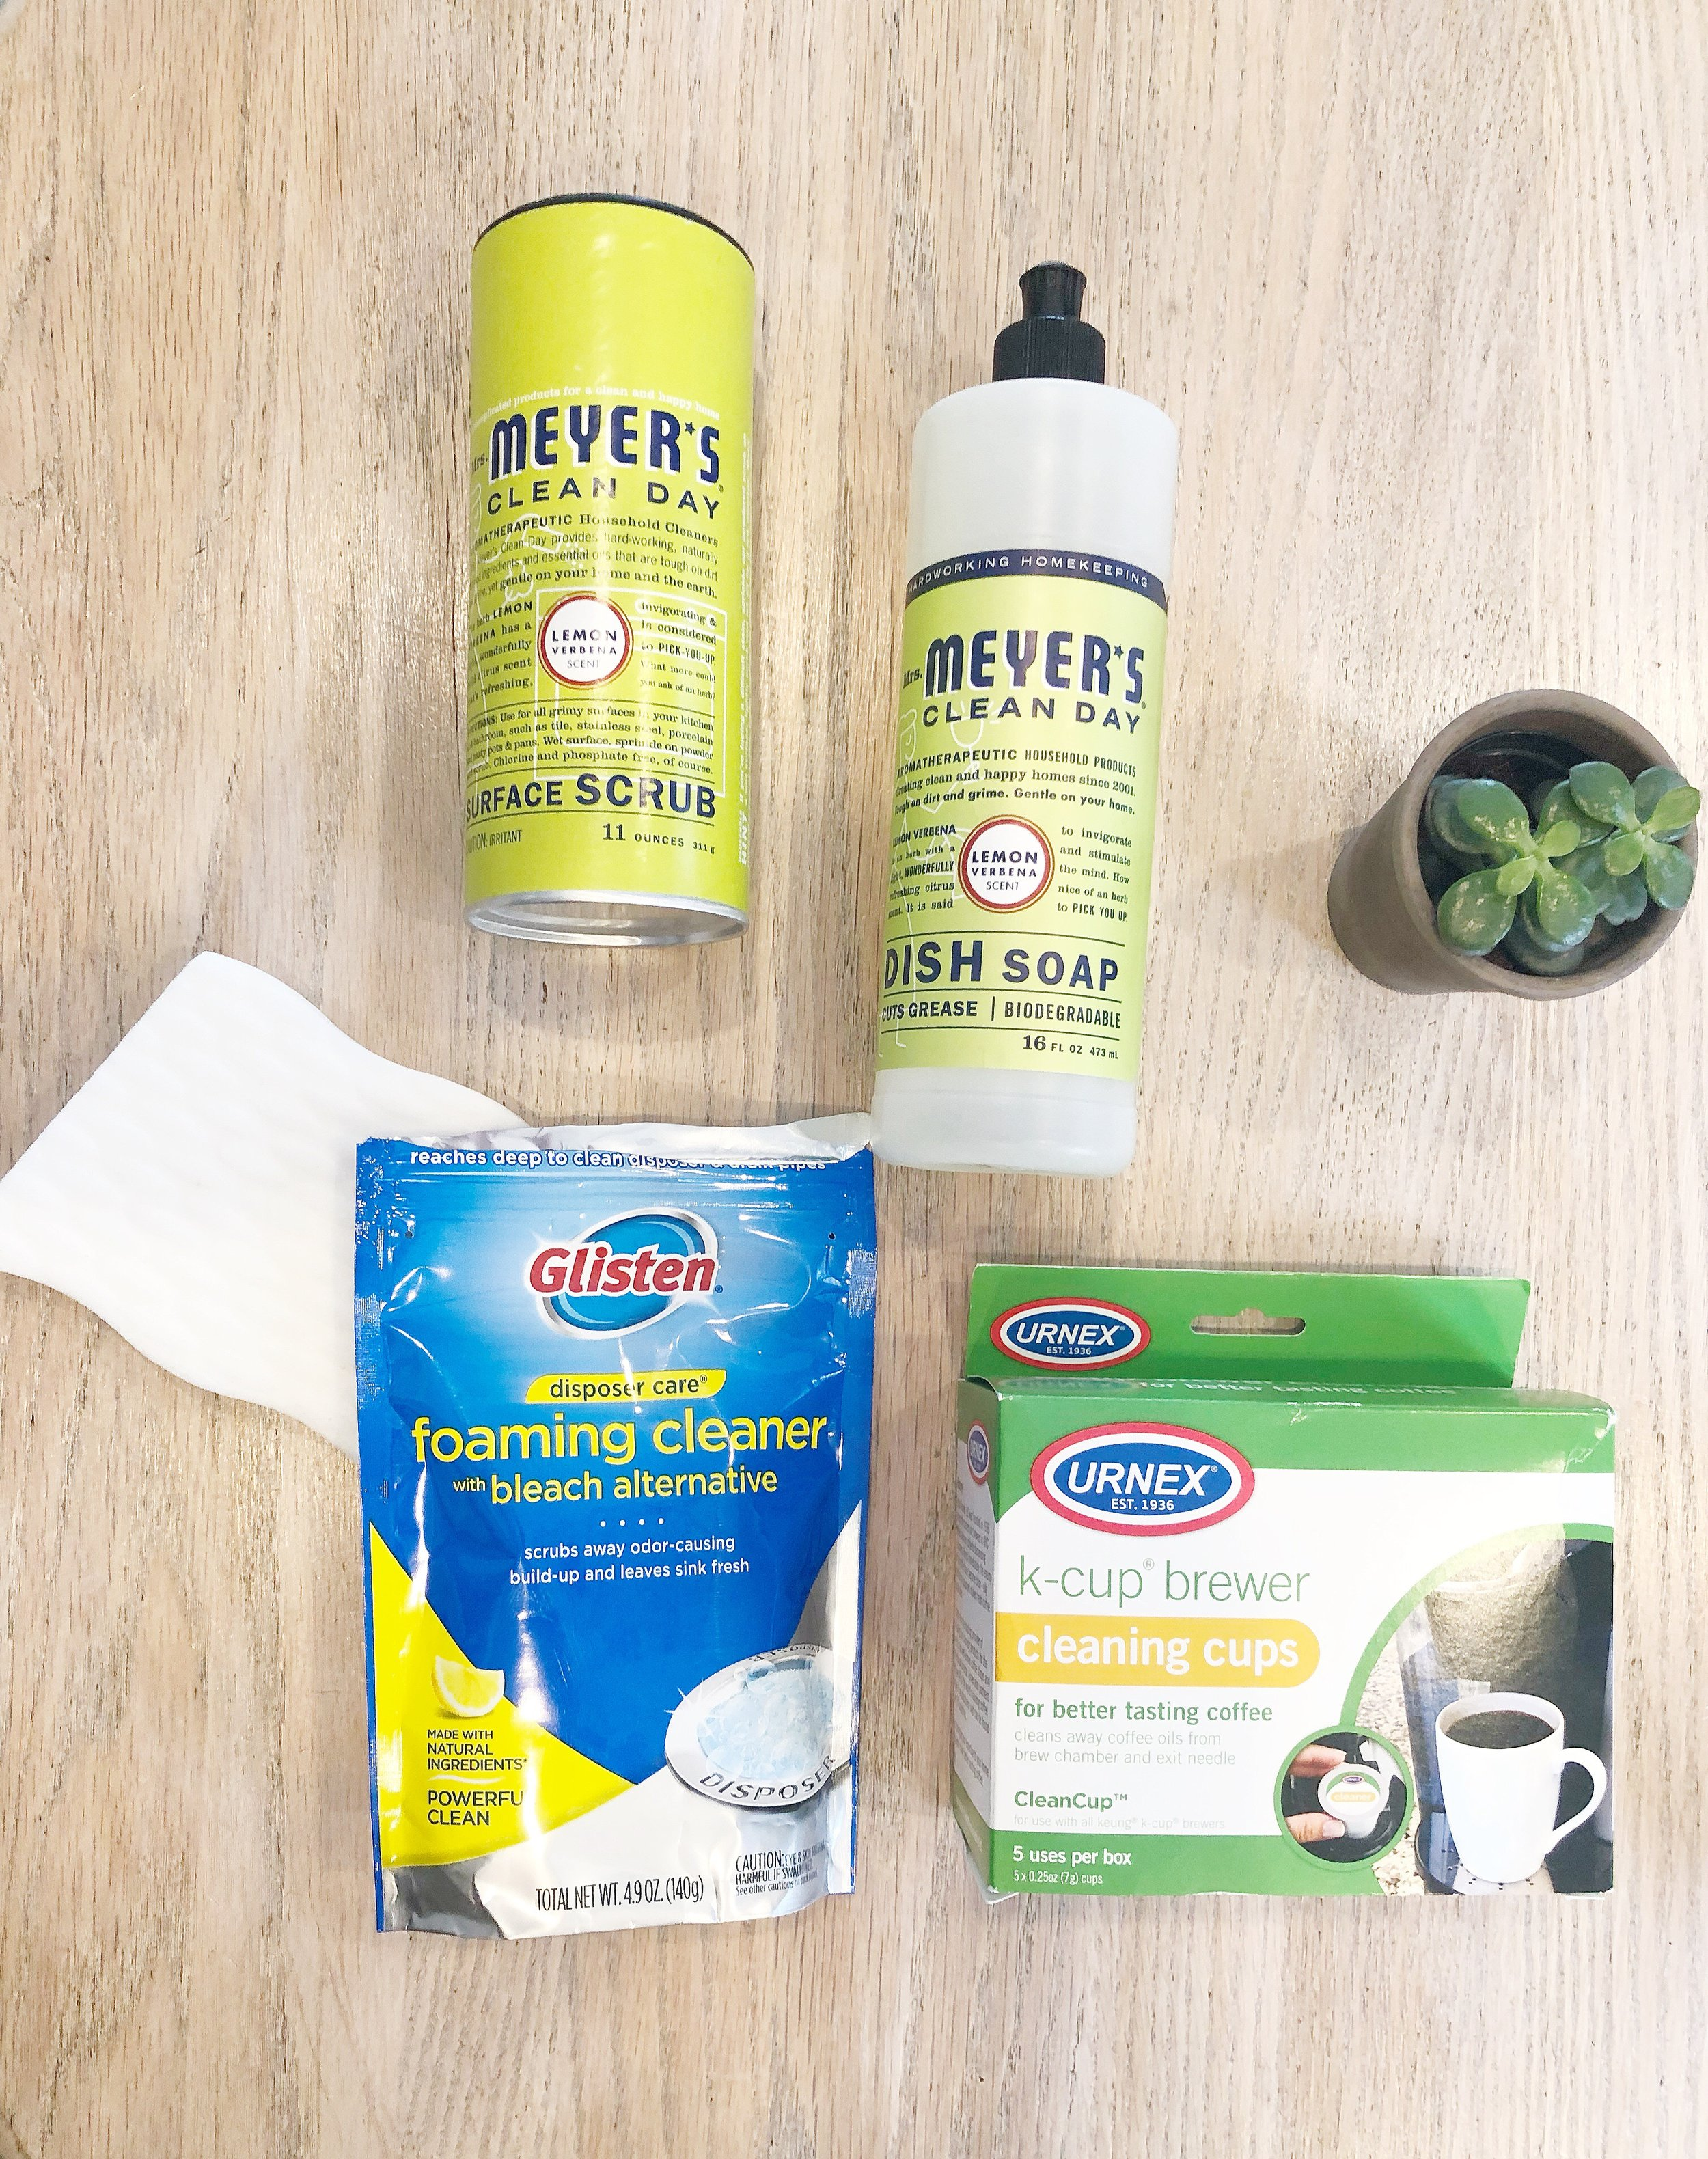 Spring cleaning products that I love!